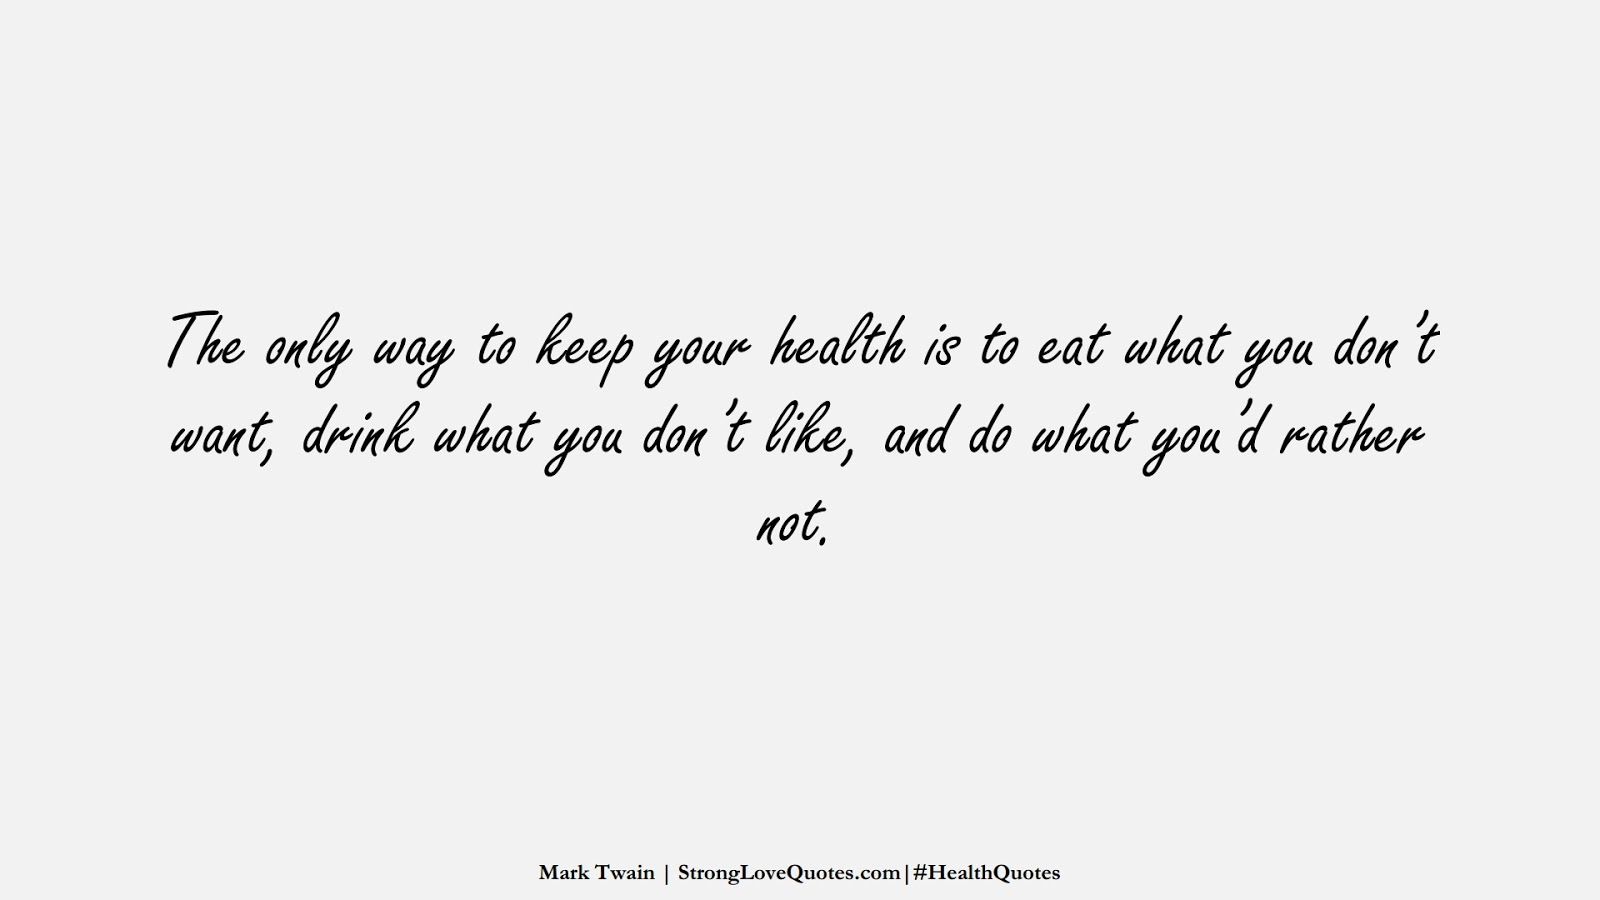 The only way to keep your health is to eat what you don't want, drink what you don't like, and do what you'd rather not. (Mark Twain);  #HealthQuotes